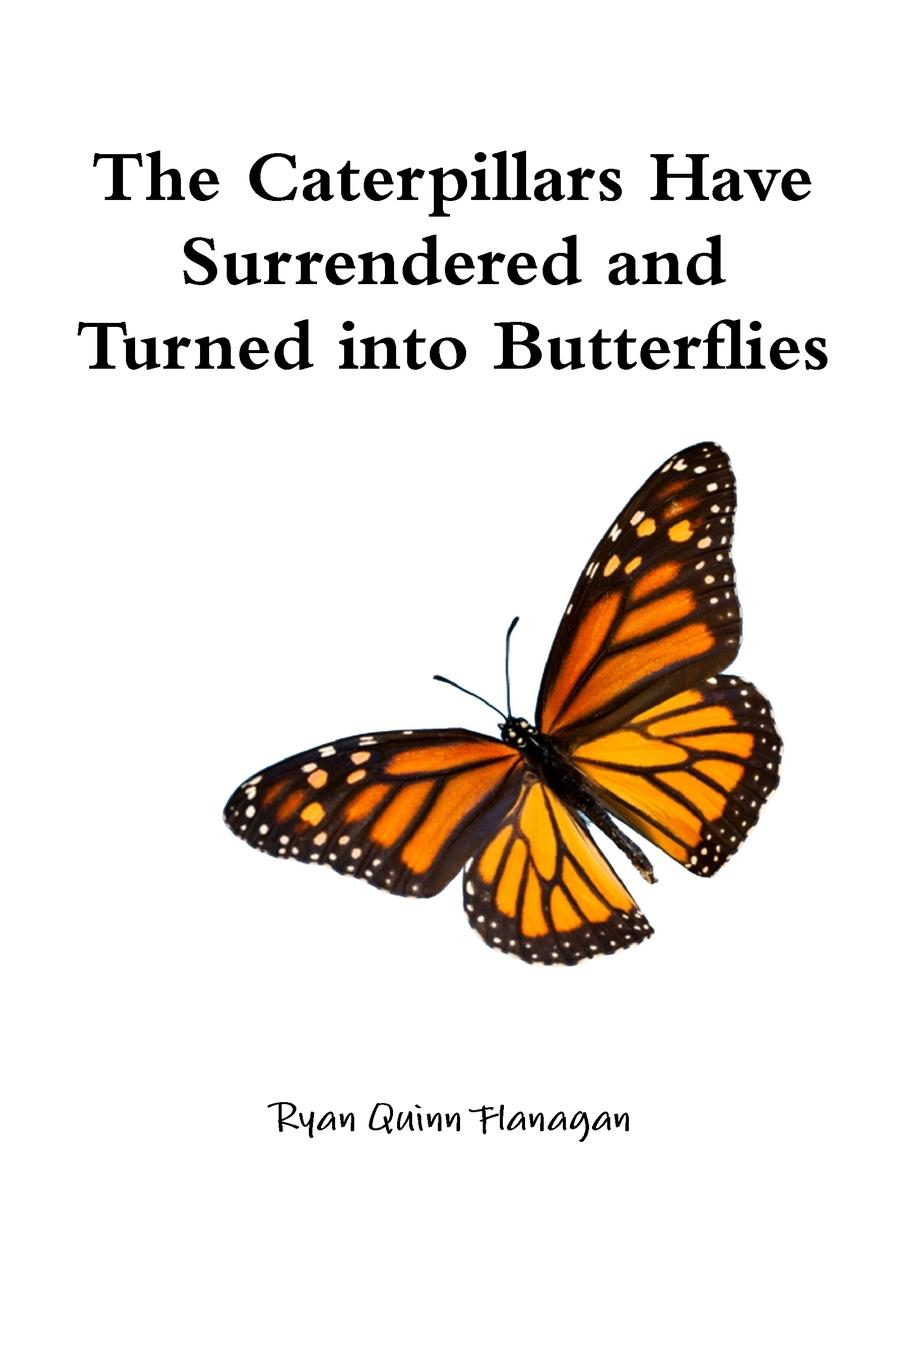 Ryan Quinn Flanagan The Caterpillars Have Surrendered and Turned into Butterflies quinn daniel ishmael